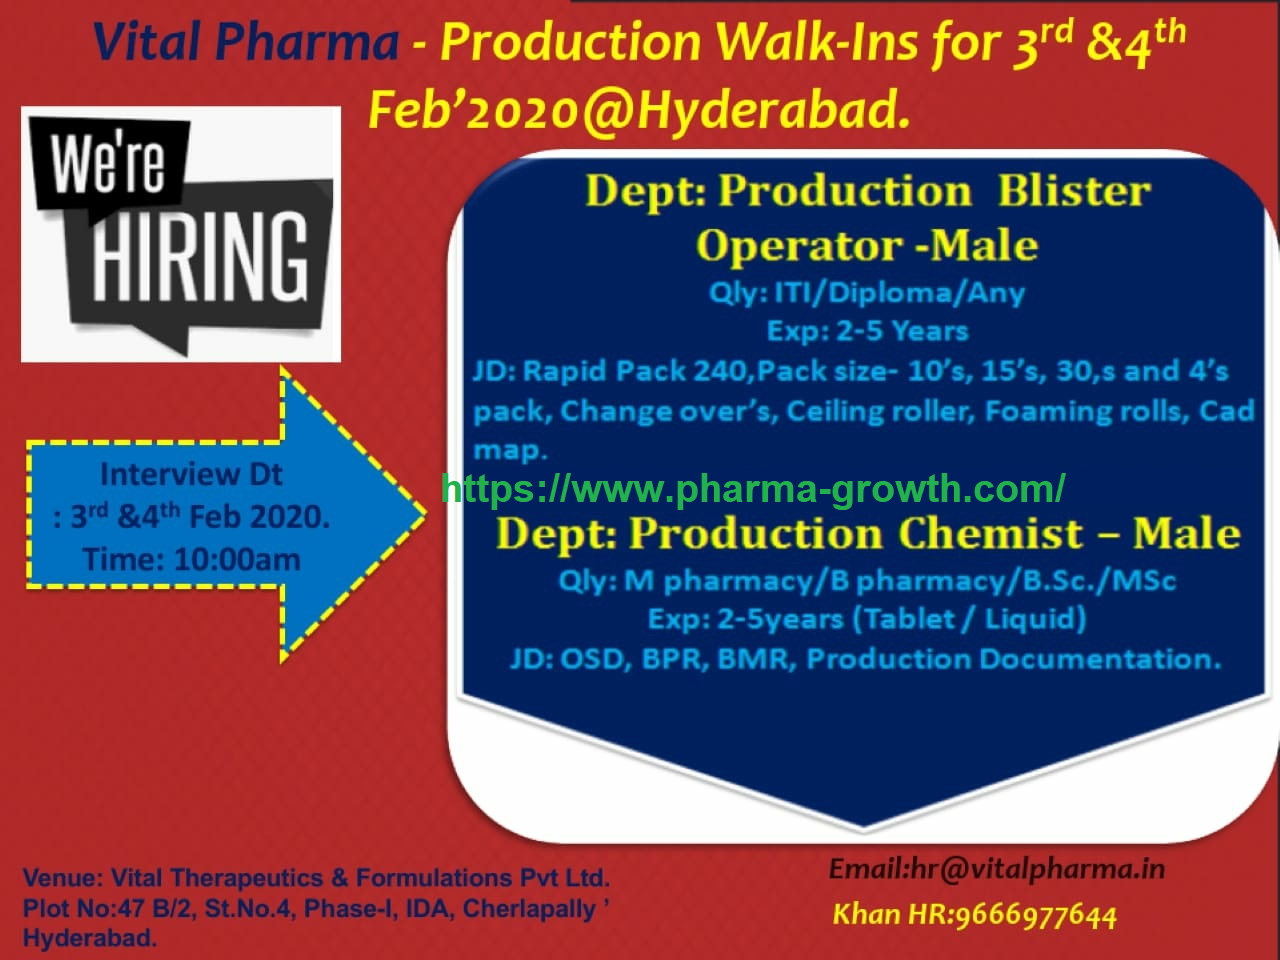 Vital Pharma - Walk-In Interview for Production Chemist & Operators - B.Pharm / M.Pharm / B.Sc / M.Sc / ITI / Diploma Candidates on 3rd & 4th Feb' 2020